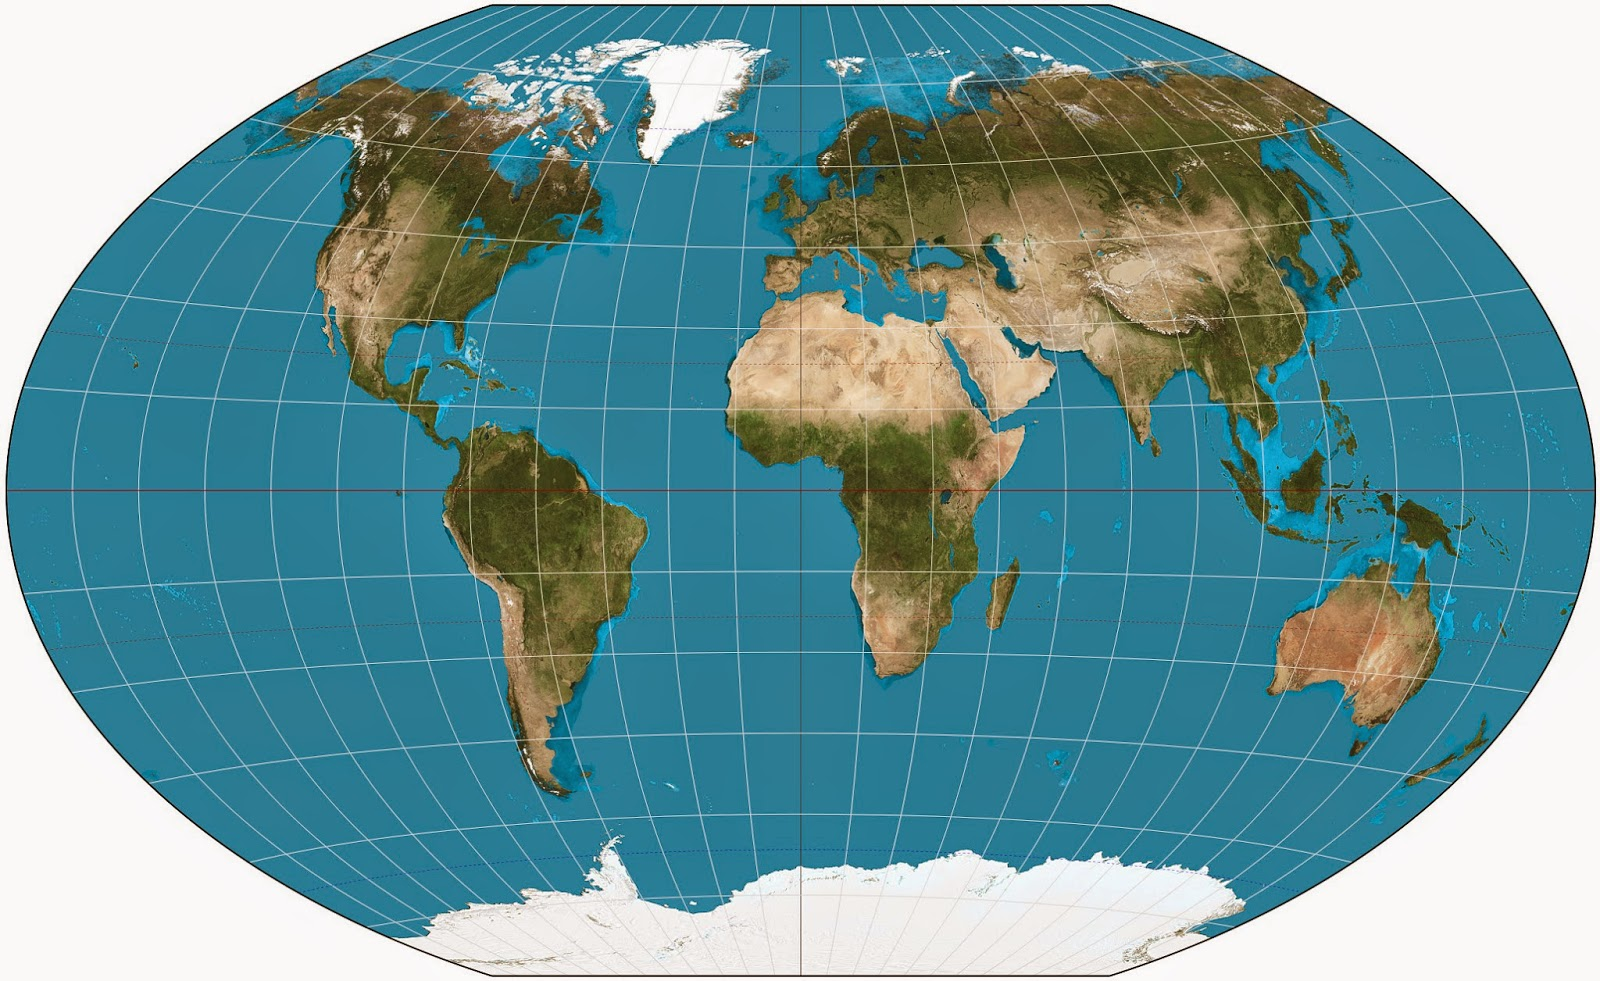 problem with winkel triple is it s not uniform across the globe so an interactive map like google s which must allow users to pan and zoom can t use it